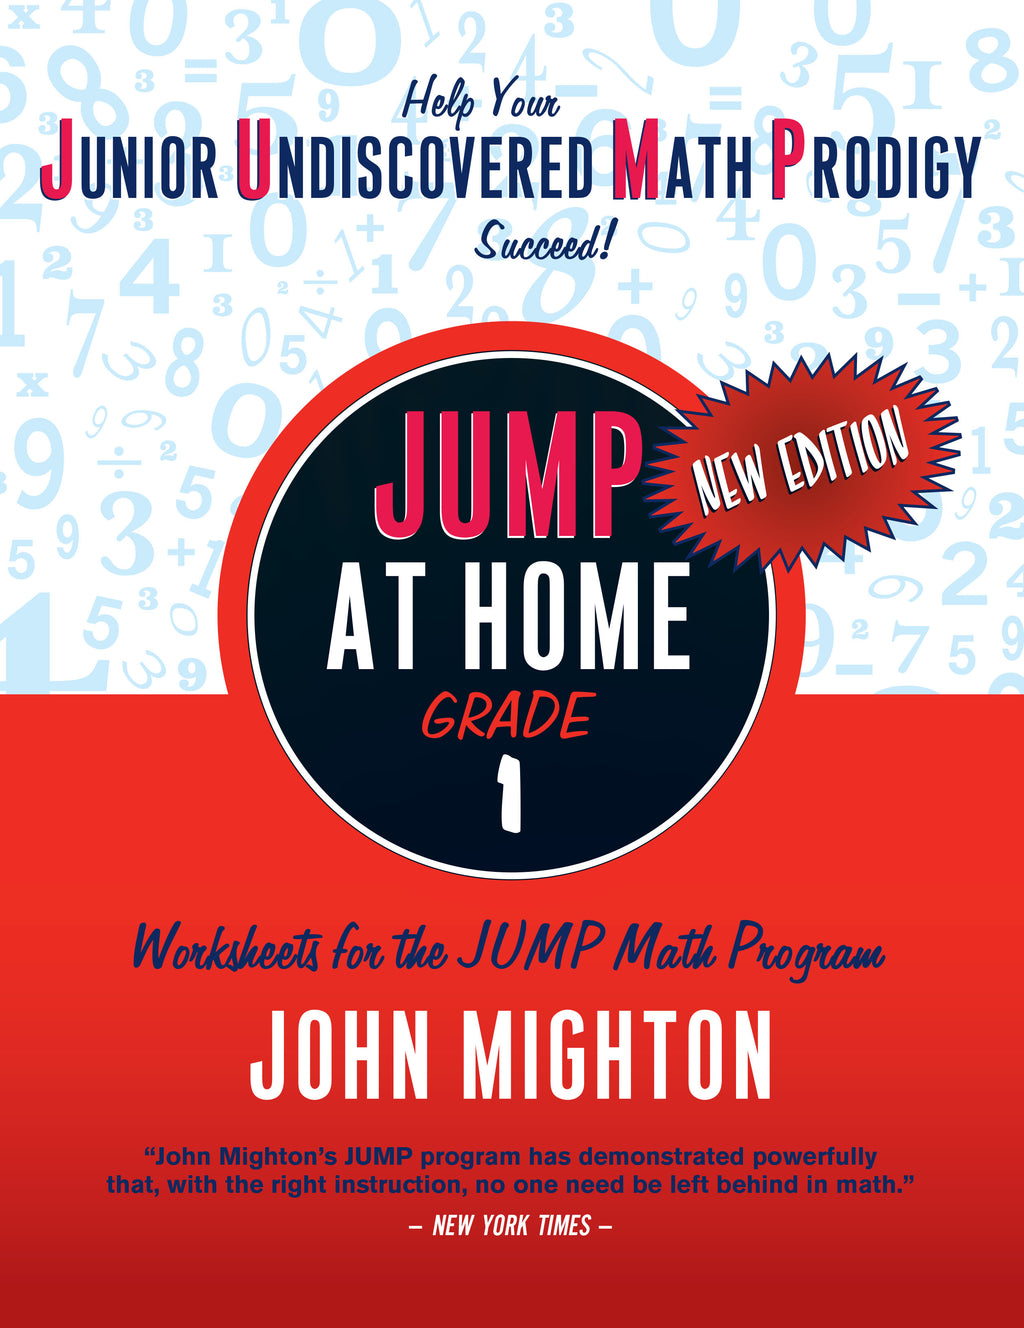 JUMP at Home: Grade 1 (PDF edition)